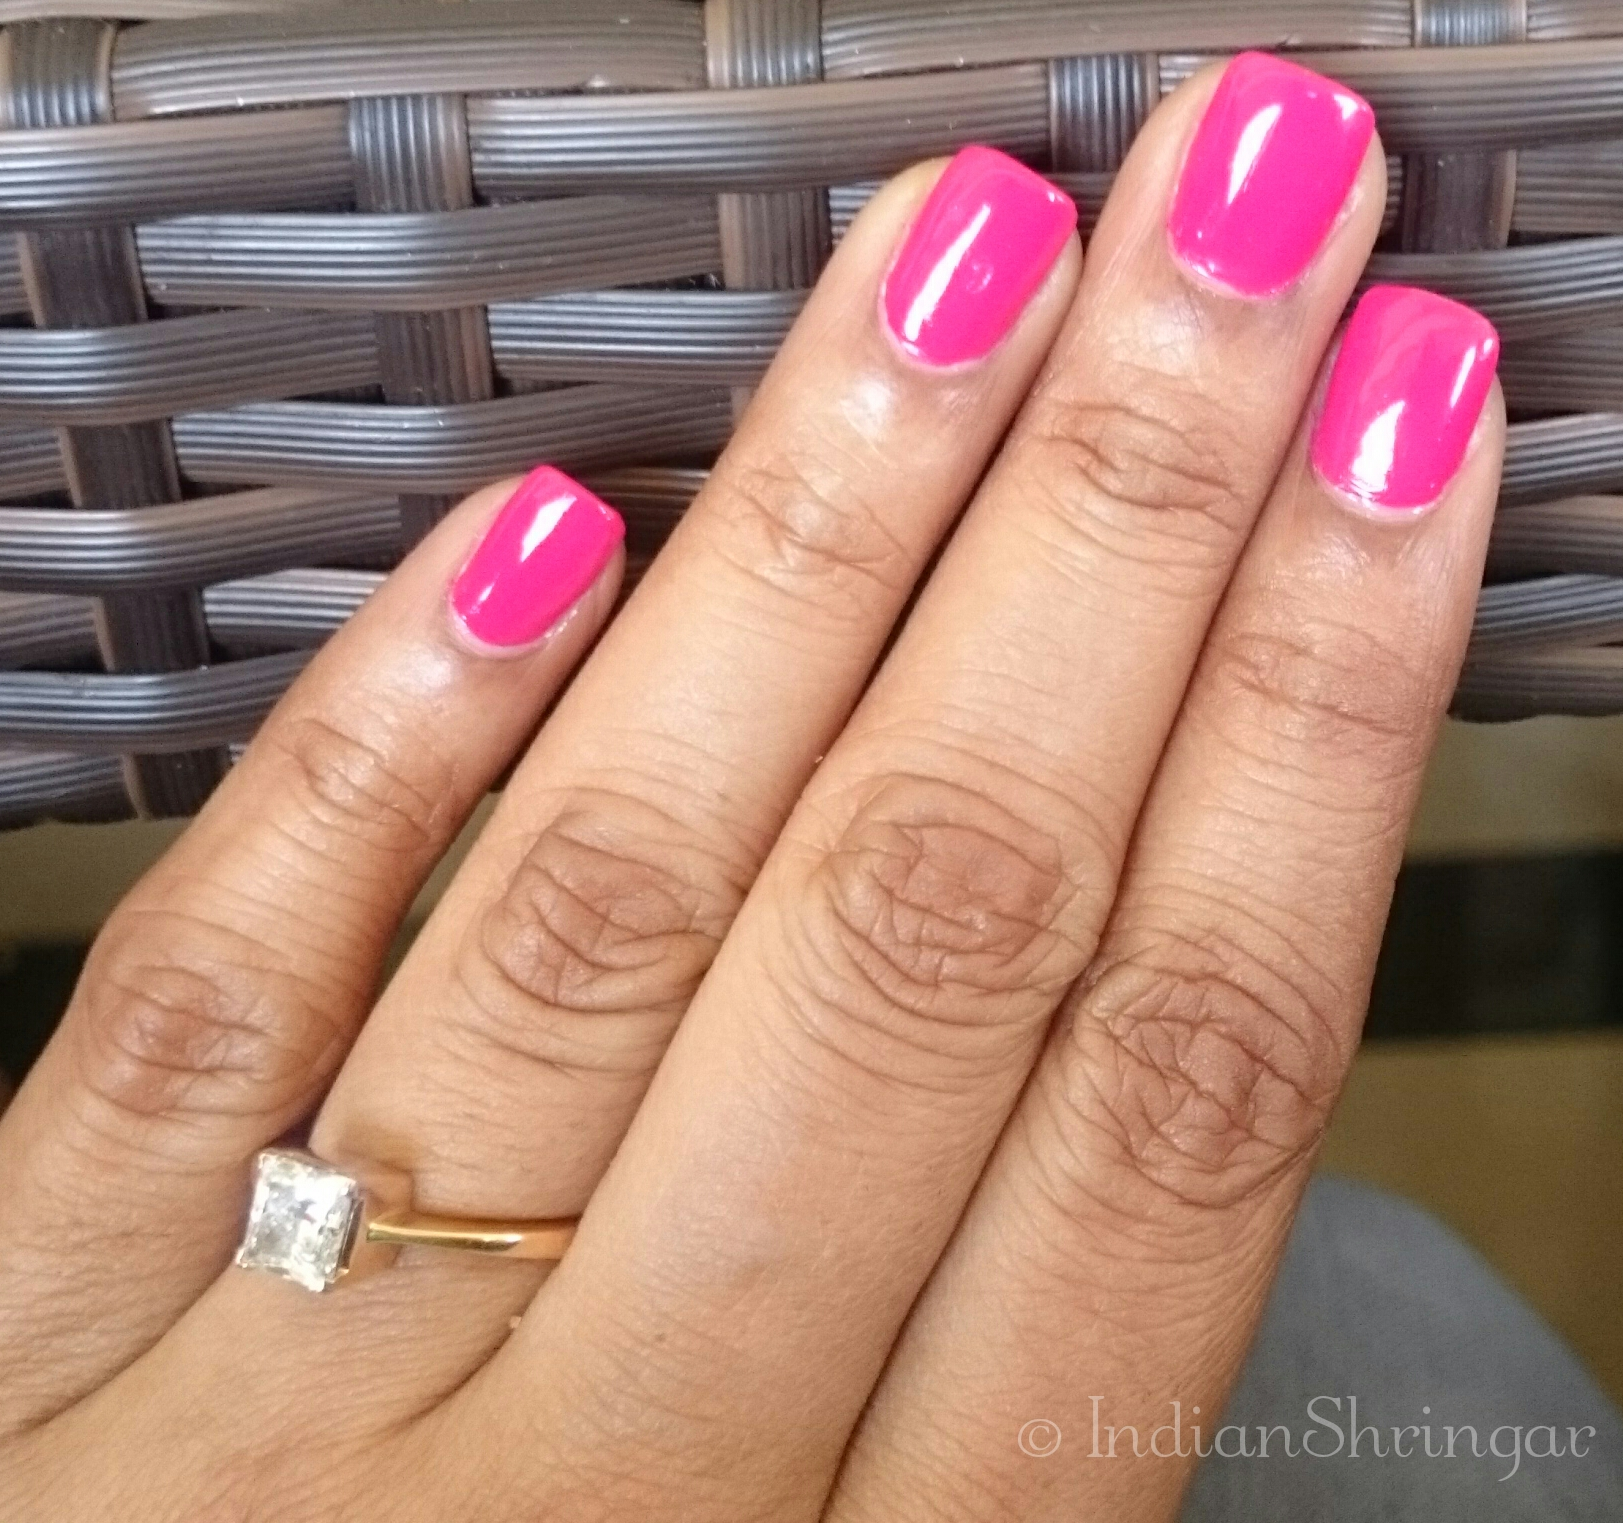 All About Gel Nails - The Procedure and The Misconceptions | The ...